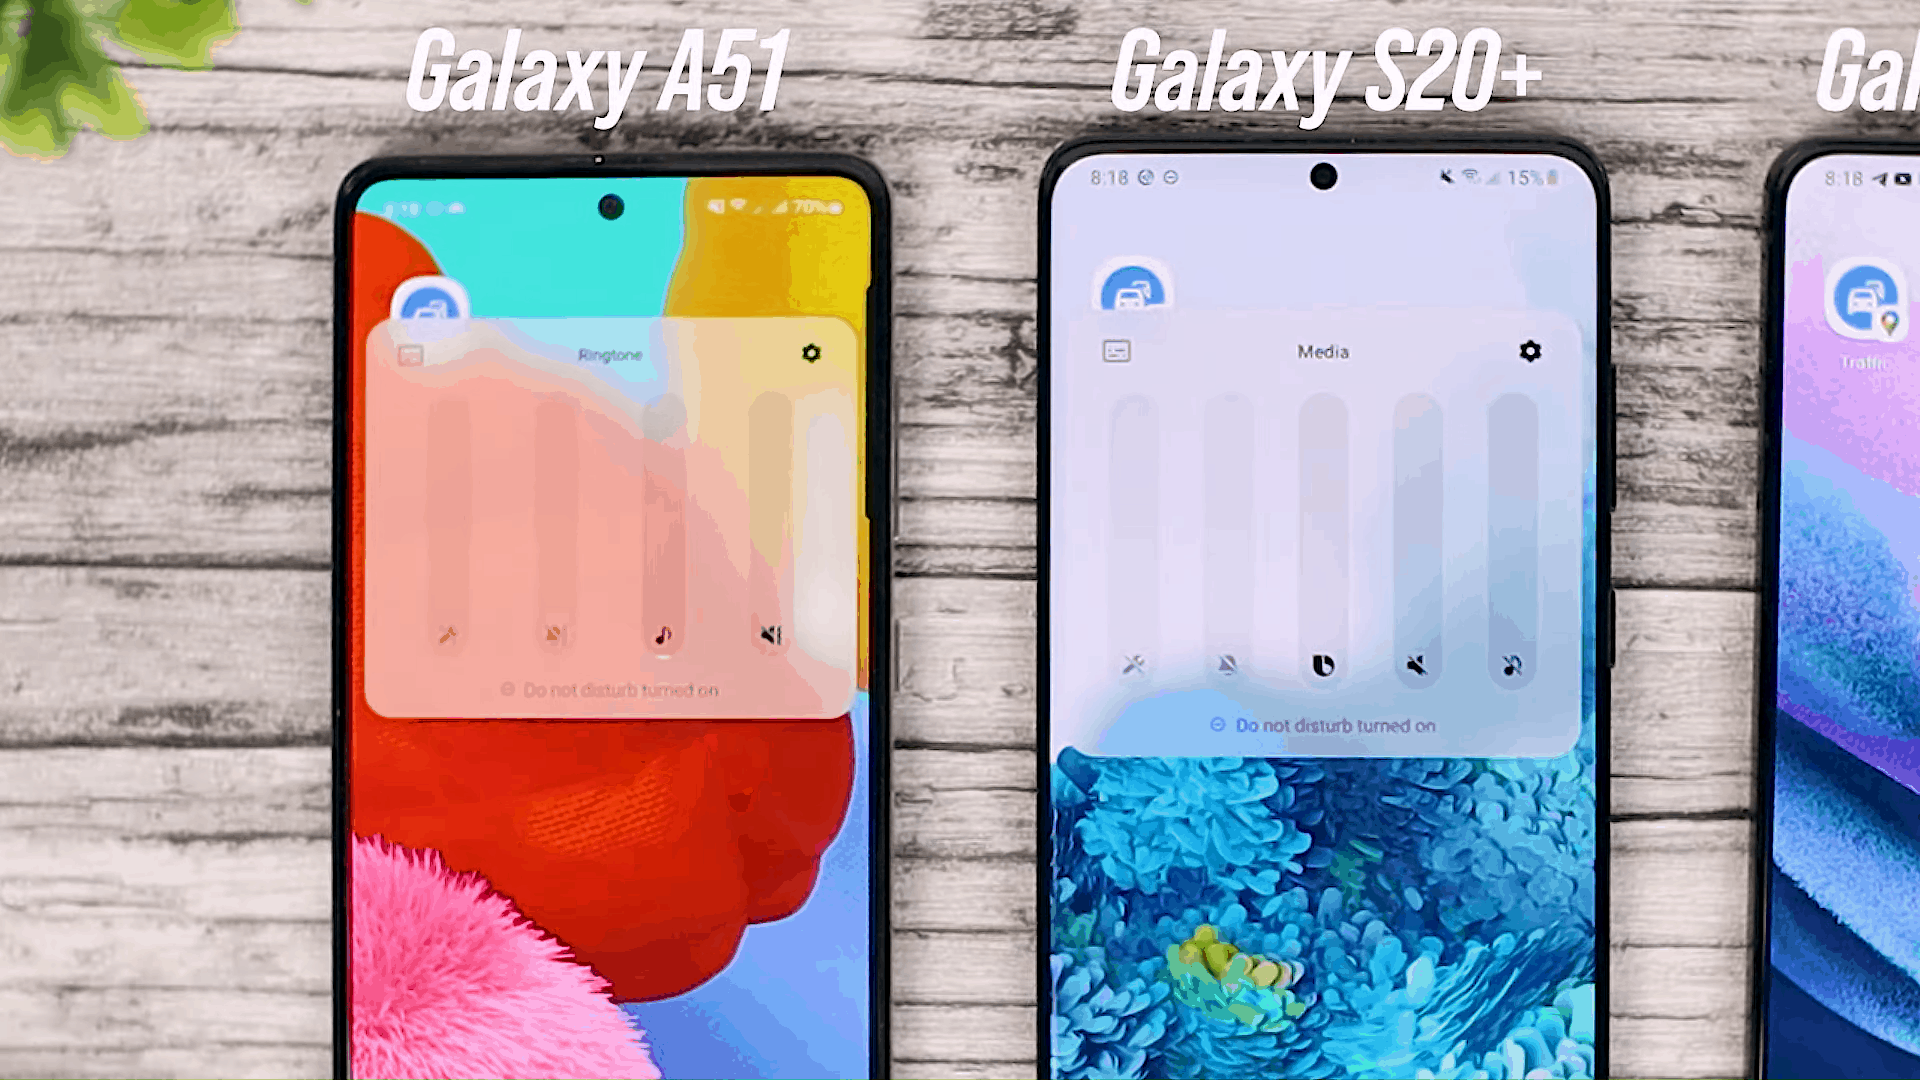 Volume Position - One UI 3.0 features of Samsung Galaxy A51 and its comparison with the Galaxy S20+ and One UI 3.1 on the Galaxy S21+